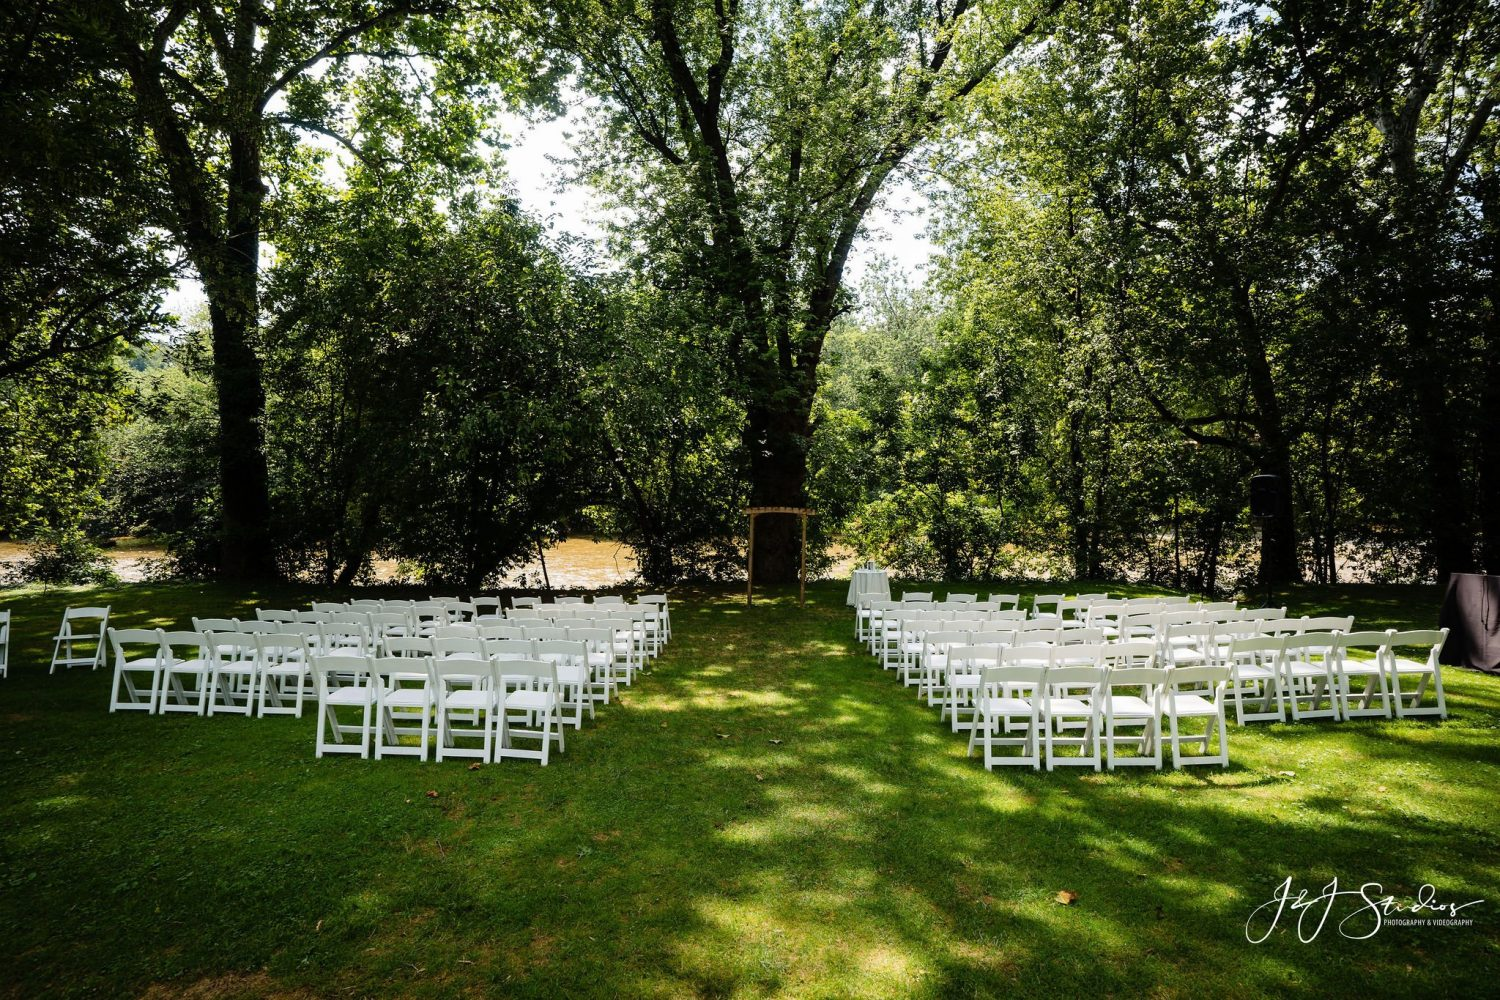 whiet chairs lawn trees sunlight beaming in ceremony wedding